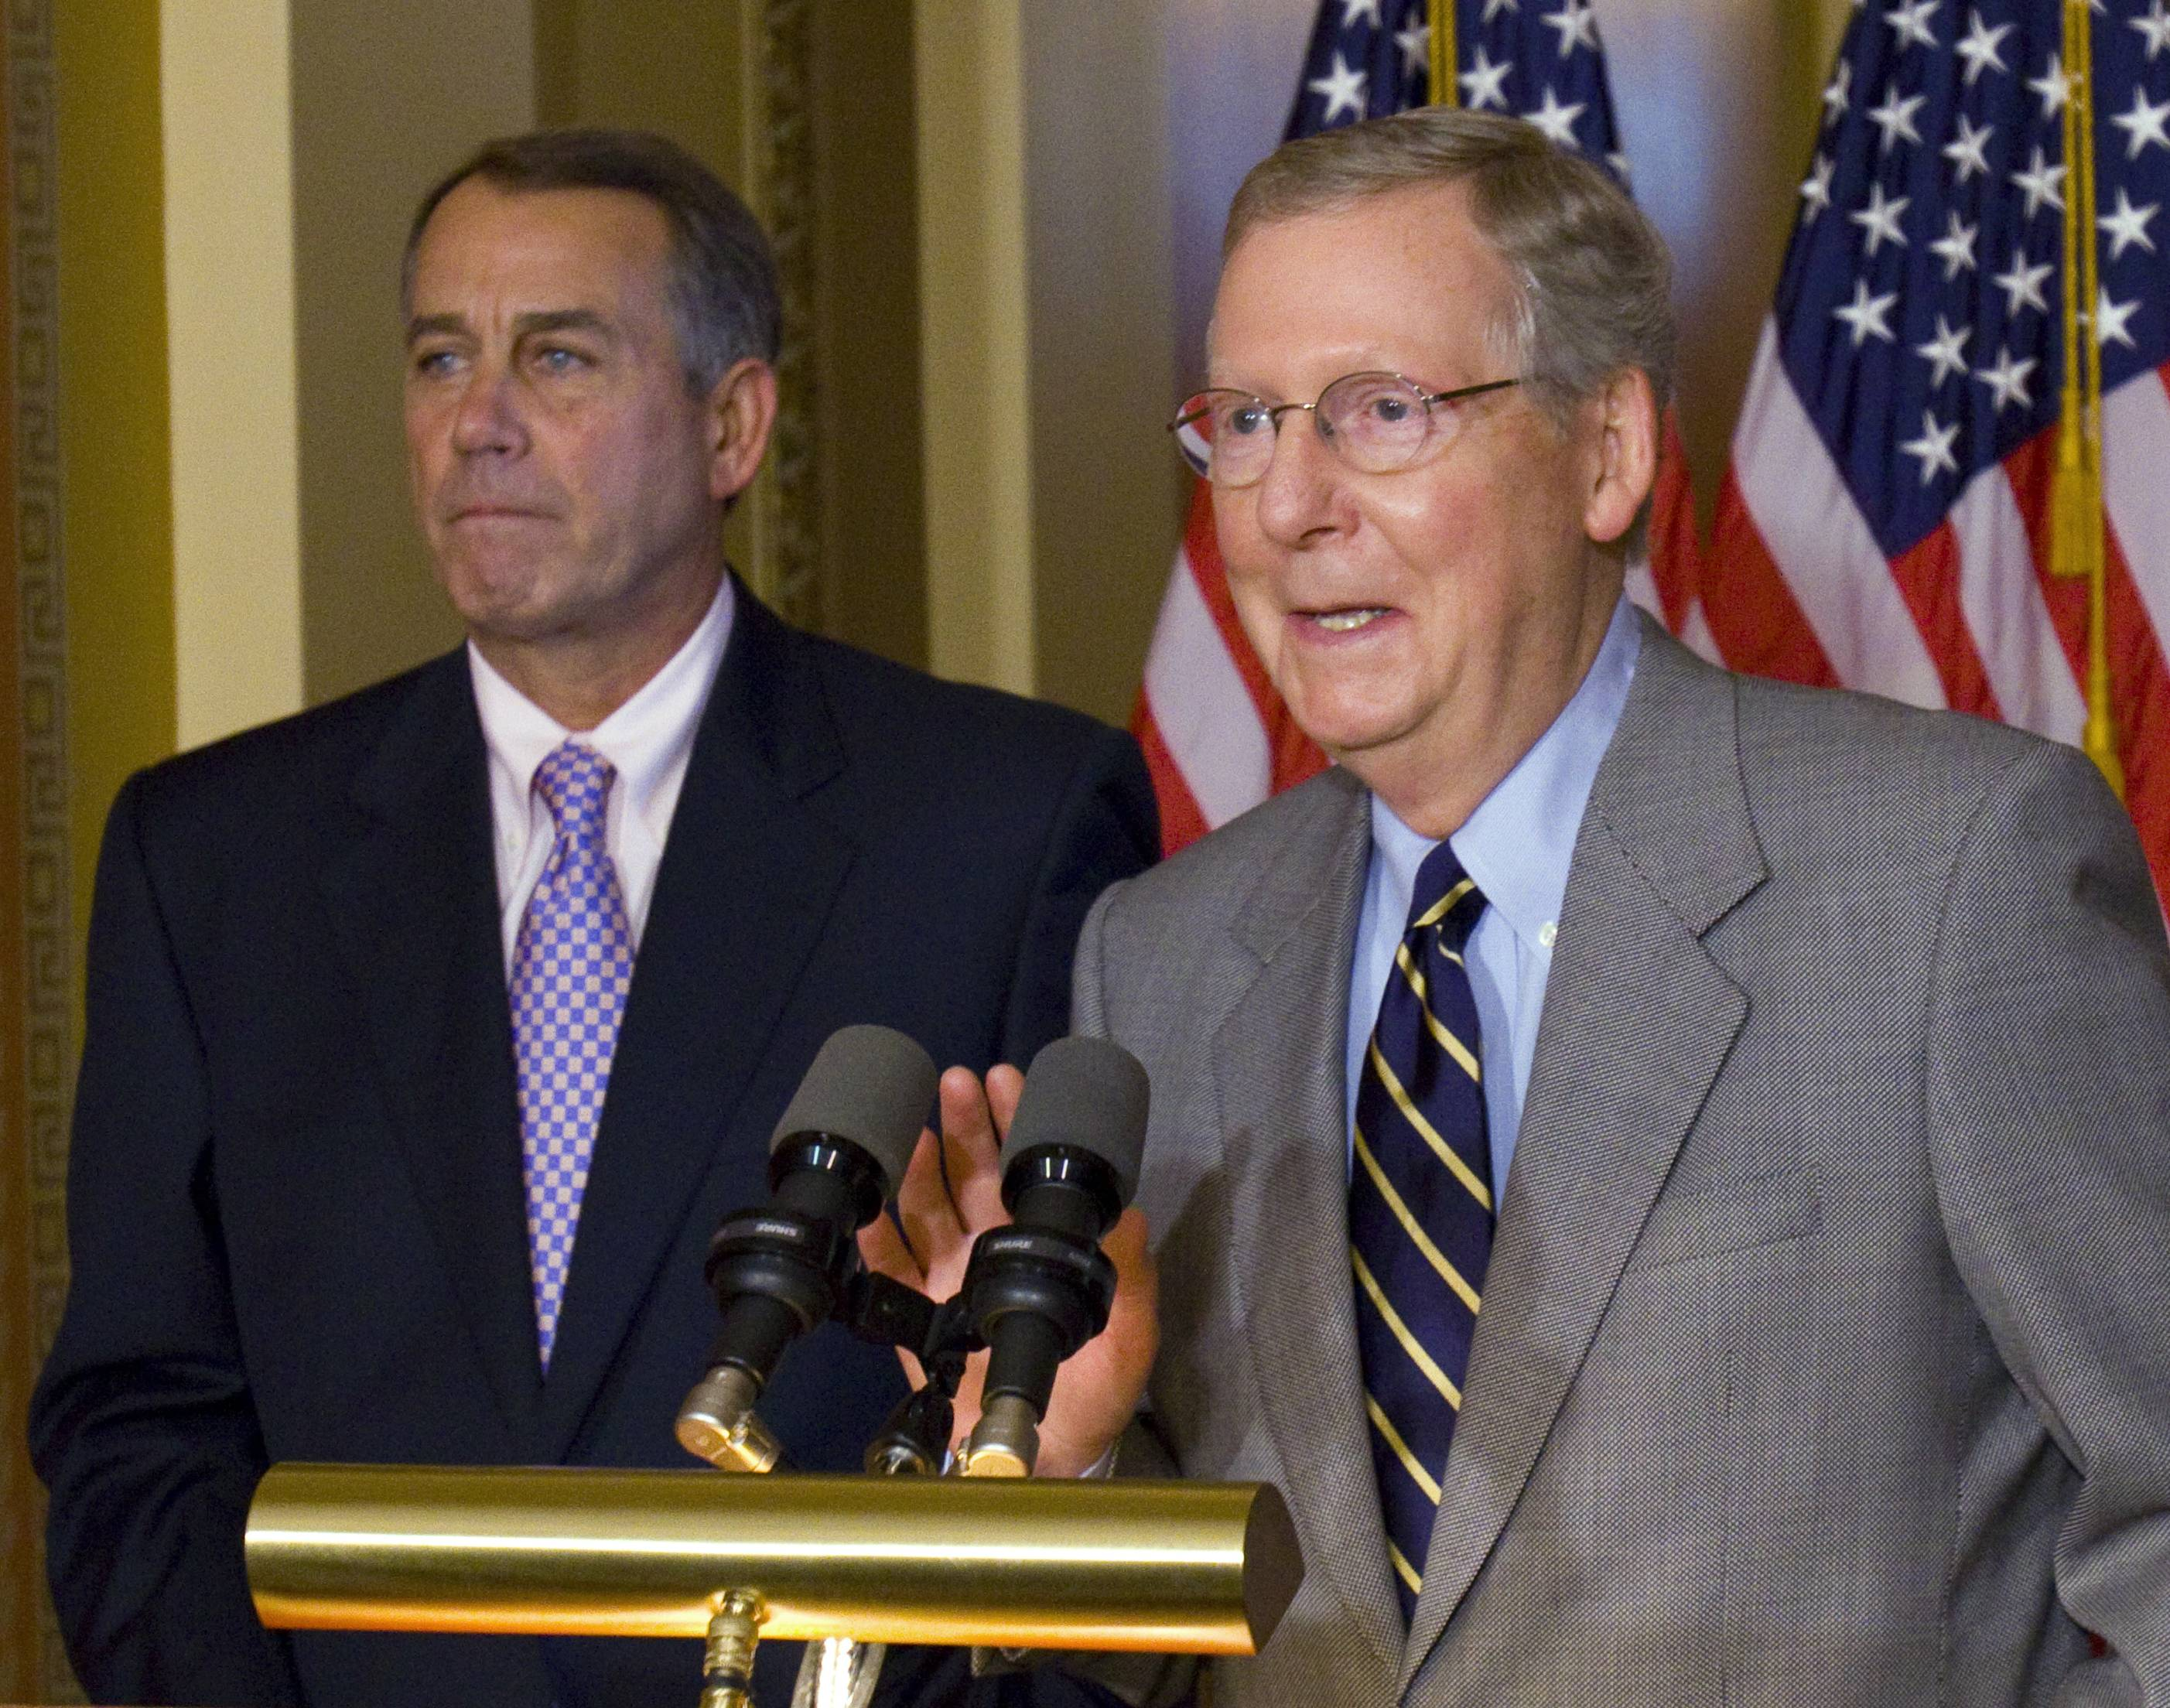 GOP congressional leaders House Speaker John Boehner and Senate Minority Leader Mitch McConnell endorsed an greement with Democrats and the White House that would avert a federal financial default.